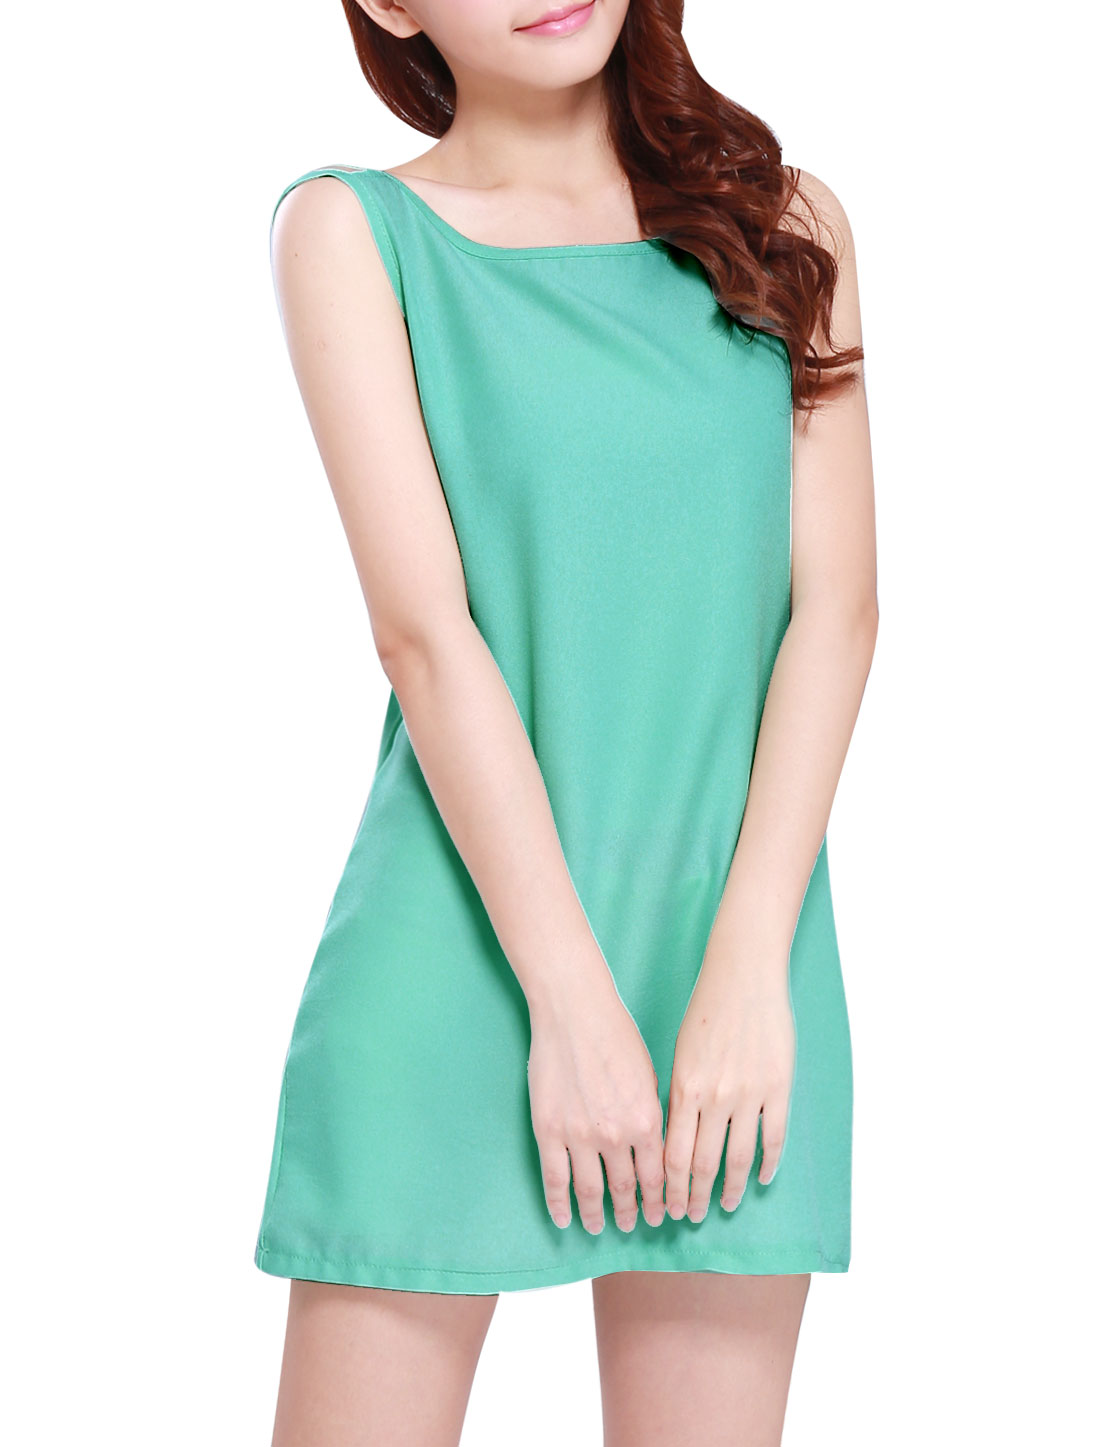 Ladies Slipover Scoop Neck Pure Design Summer Tank Dress Aqua XS